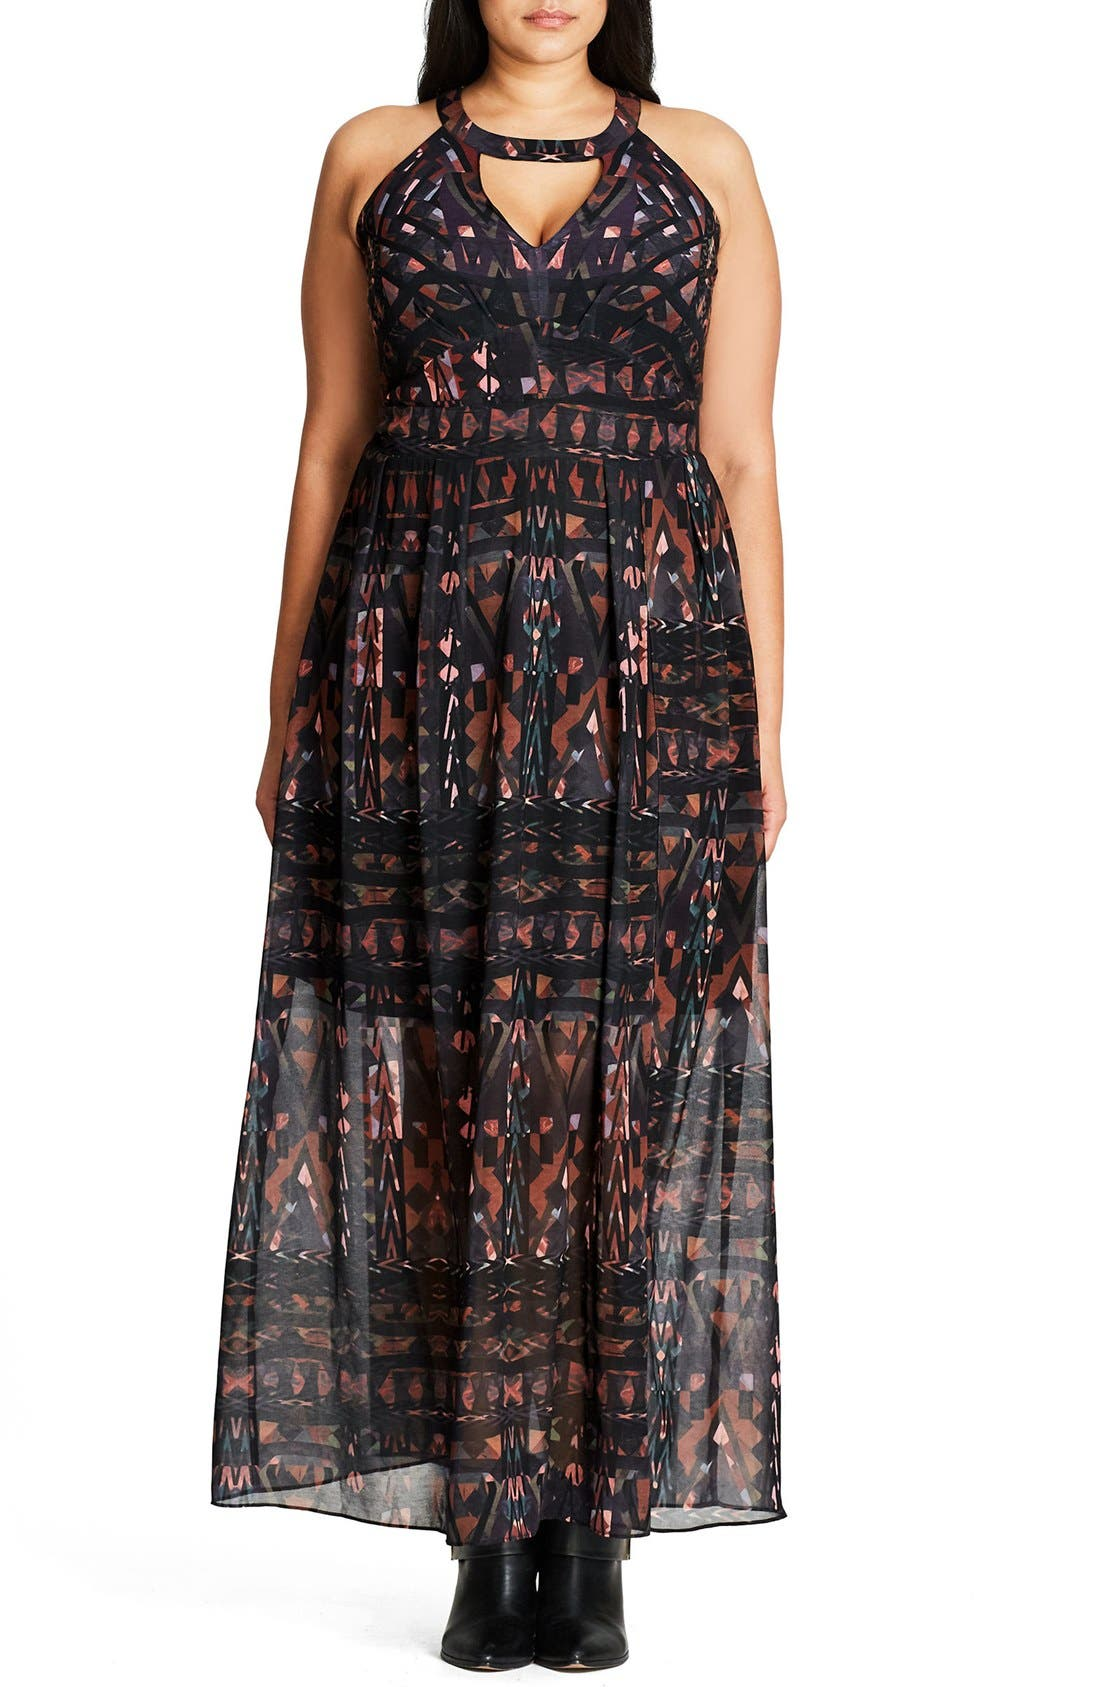 CITY CHIC So Abstract Cutout Bodice Maxi Dress